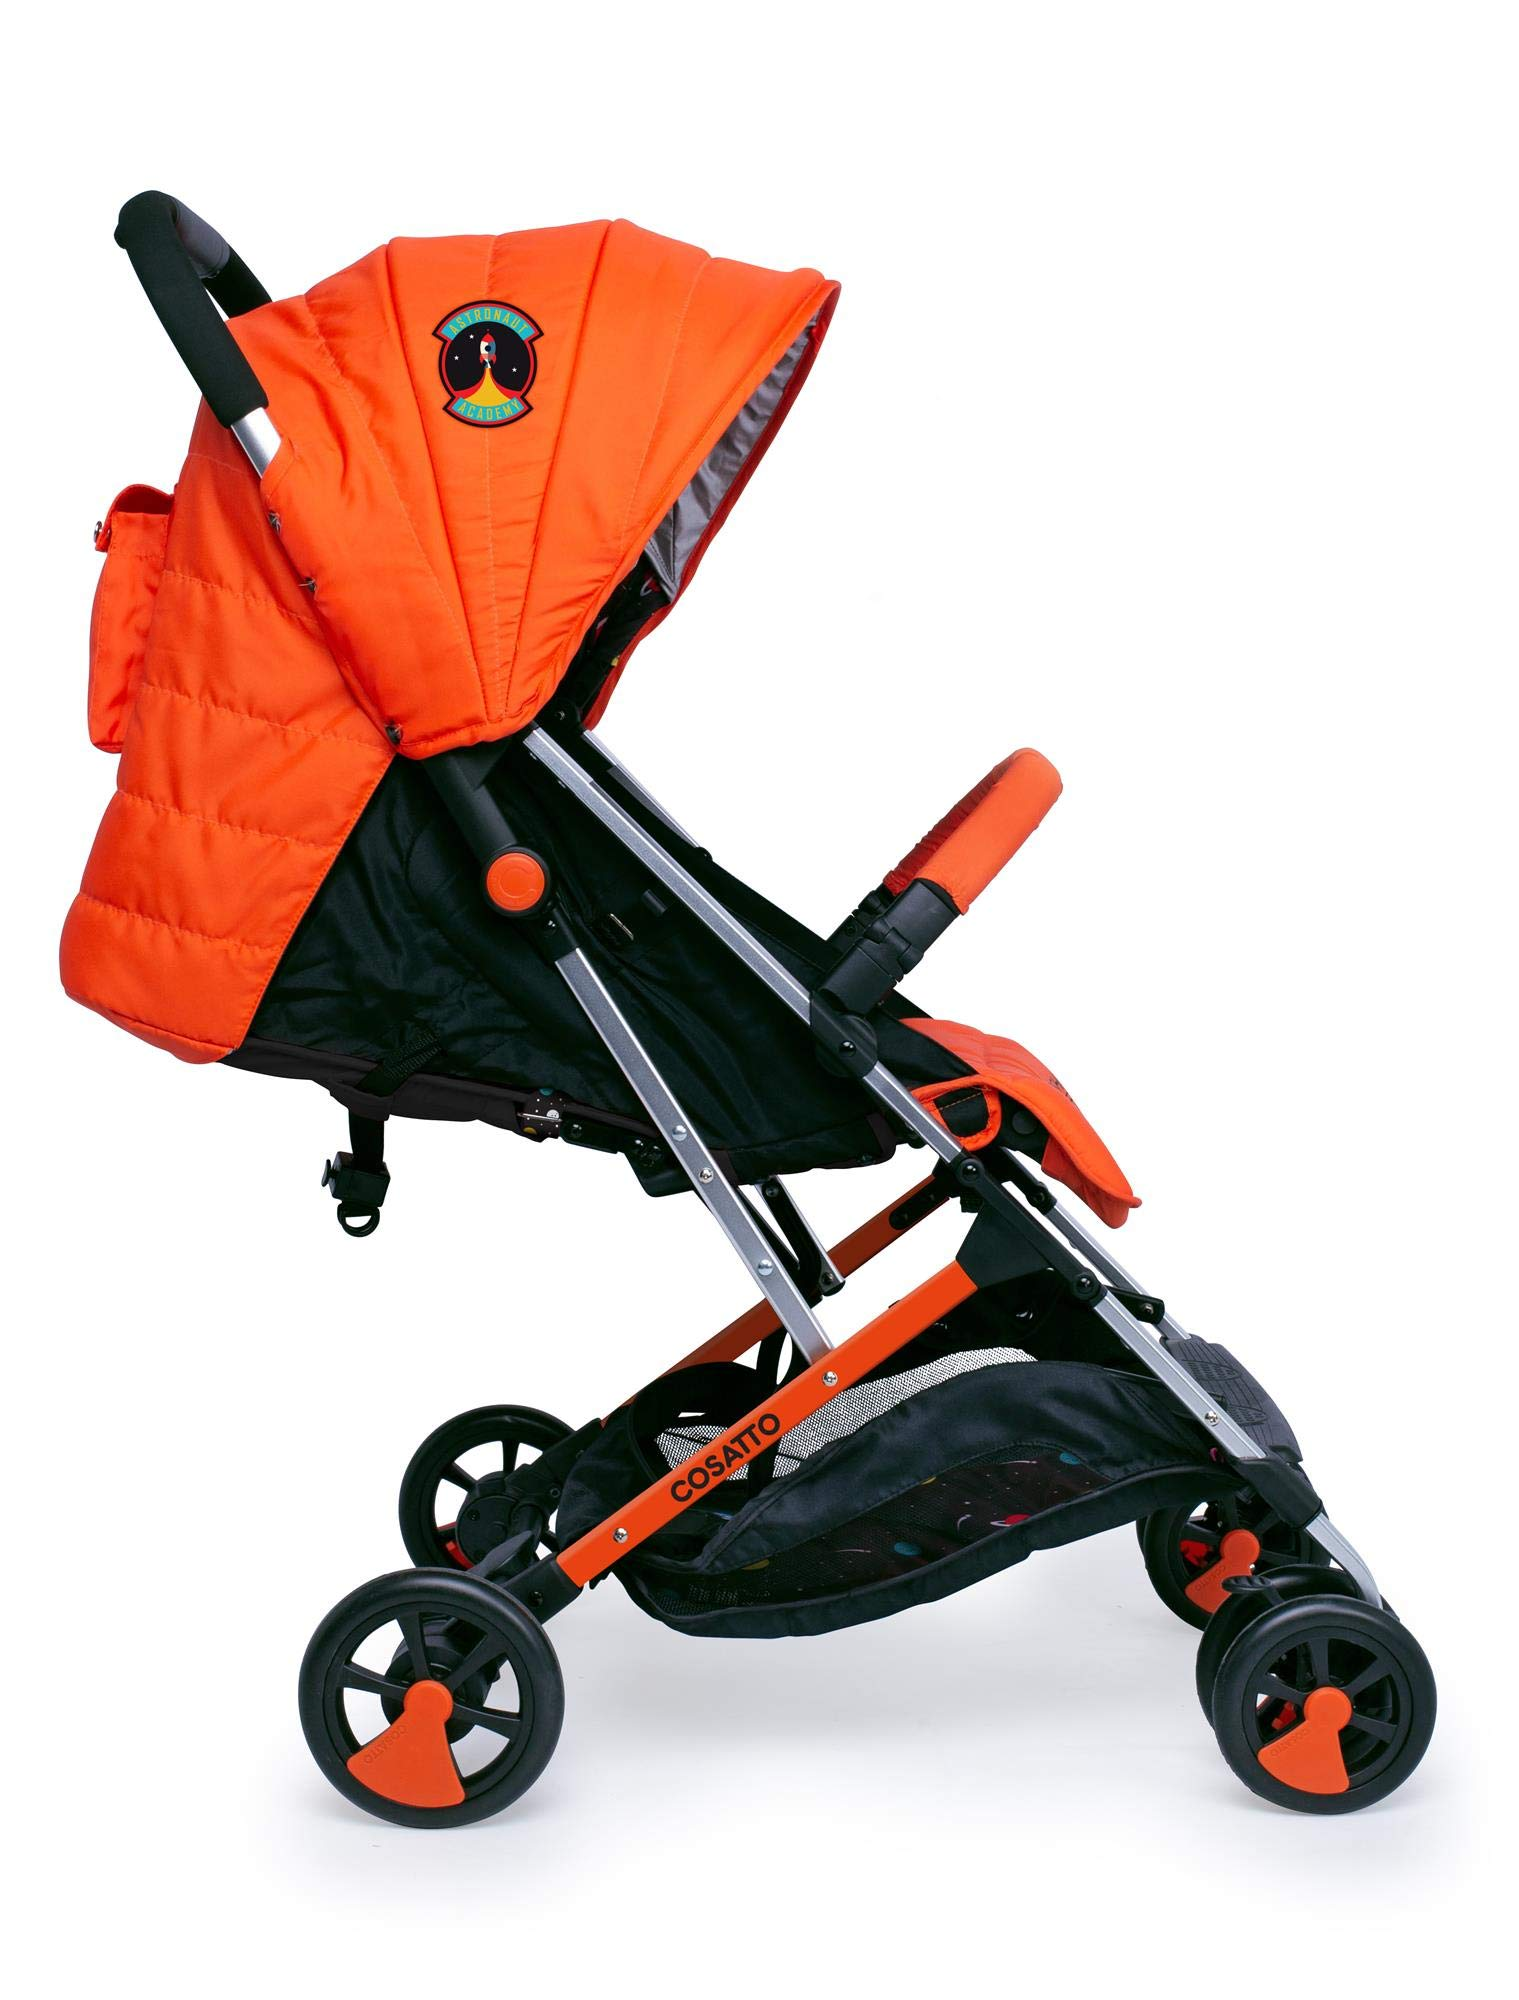 Cosatto Woosh 2 Stroller Spaceman with raincover and Bumper bar Birth to 25kg Cosatto INCLUDES: The pushchair itself, Raincover, Bumper bar,4 year guarantee(UK and Ireland only) Suitable from birth to max weight of 25kg. Lets your toddler use it for even longer. Lightweight, sturdy aluminium frame. Newborn recline. Lightweight waterproof Ripstop fabric on seat. Lockable swivel front wheels for quick manoeuvres Roomy seat for extra comfort. Removable bumper bar for extra support. Magic bell. Front & rear suspension for a smooth ride. 2